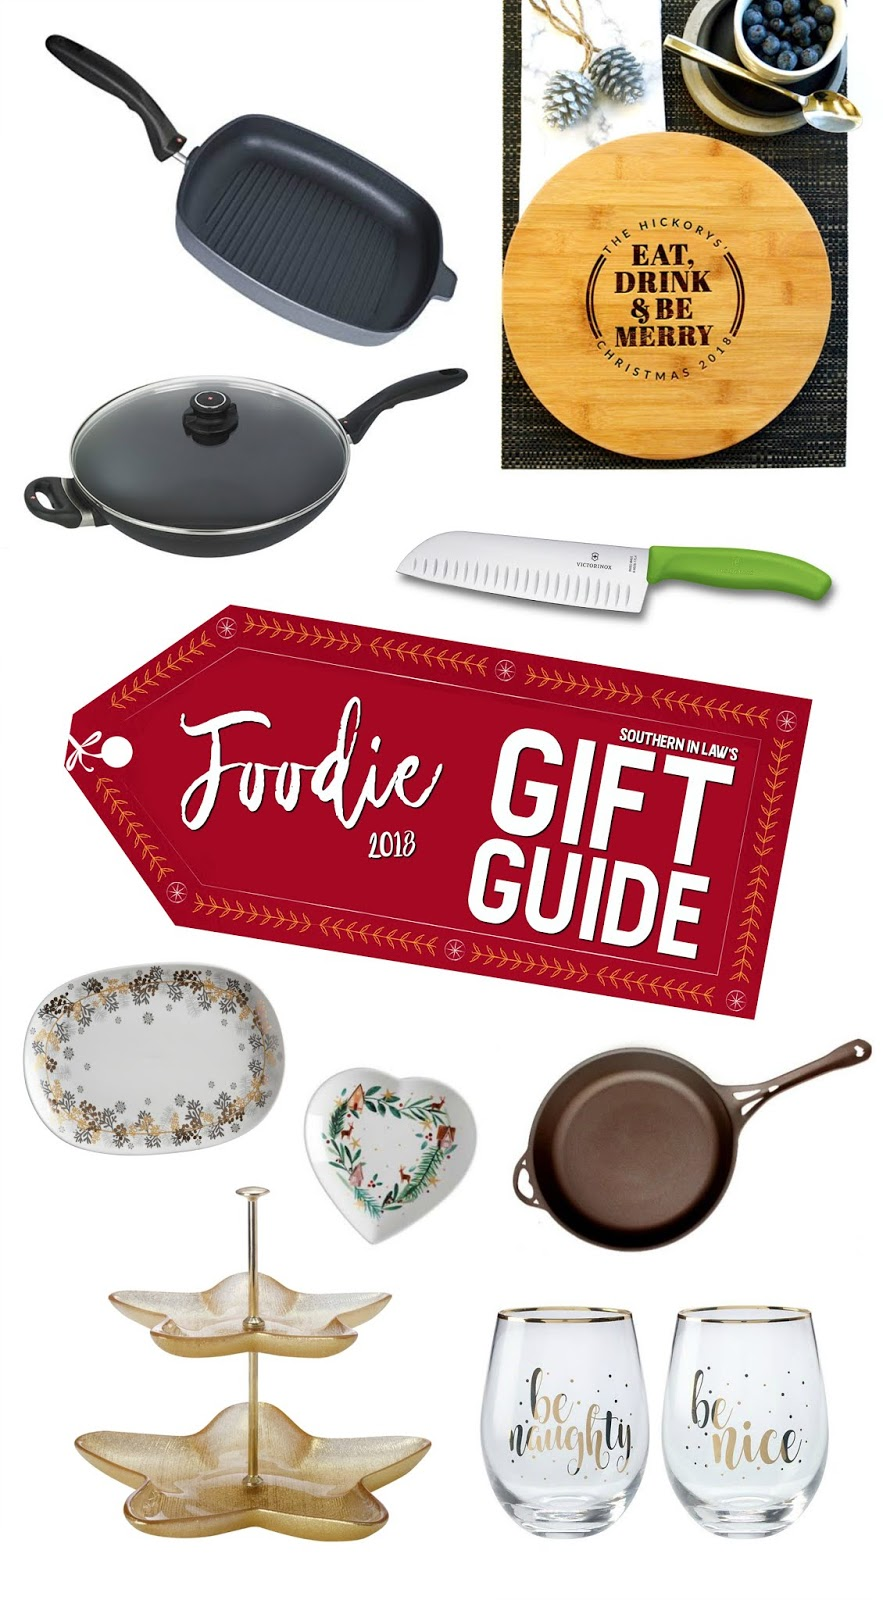 Southern In Law's Foodie Gift Guide 2018 - Gift Ideas for Foodies